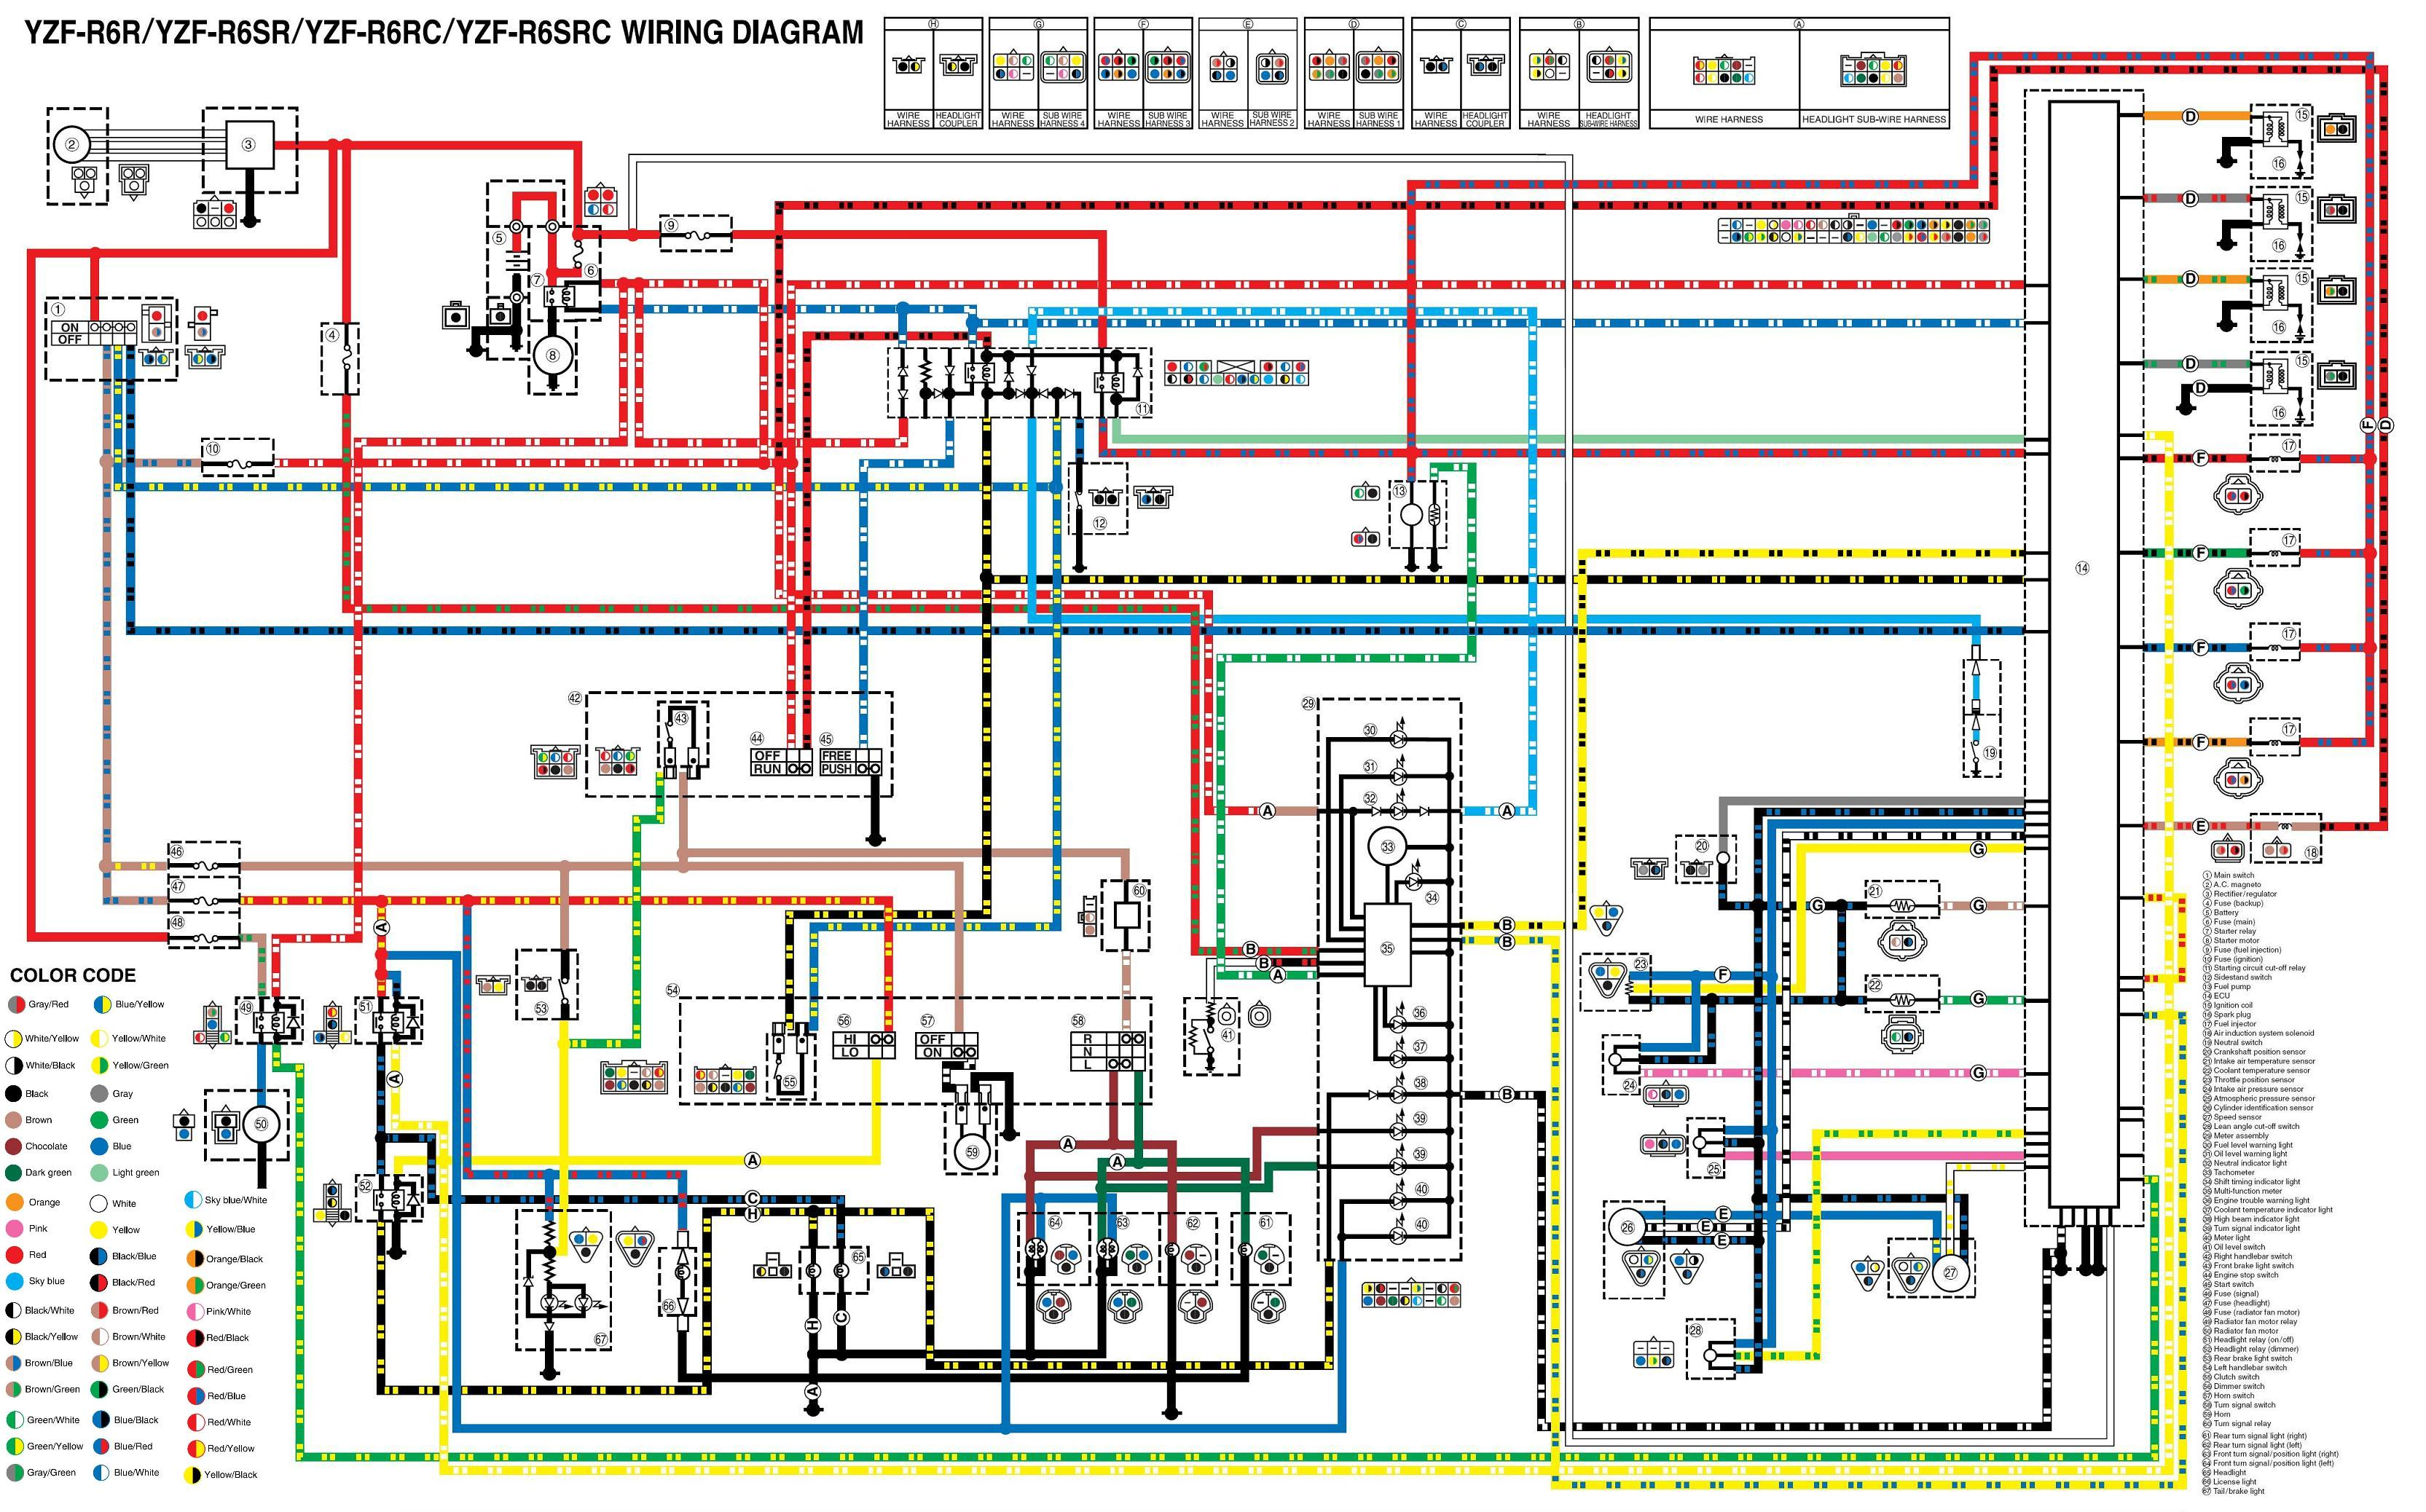 r6r wiring diagram rr wiring diagram rr database wiring diagram images translogic micro dash